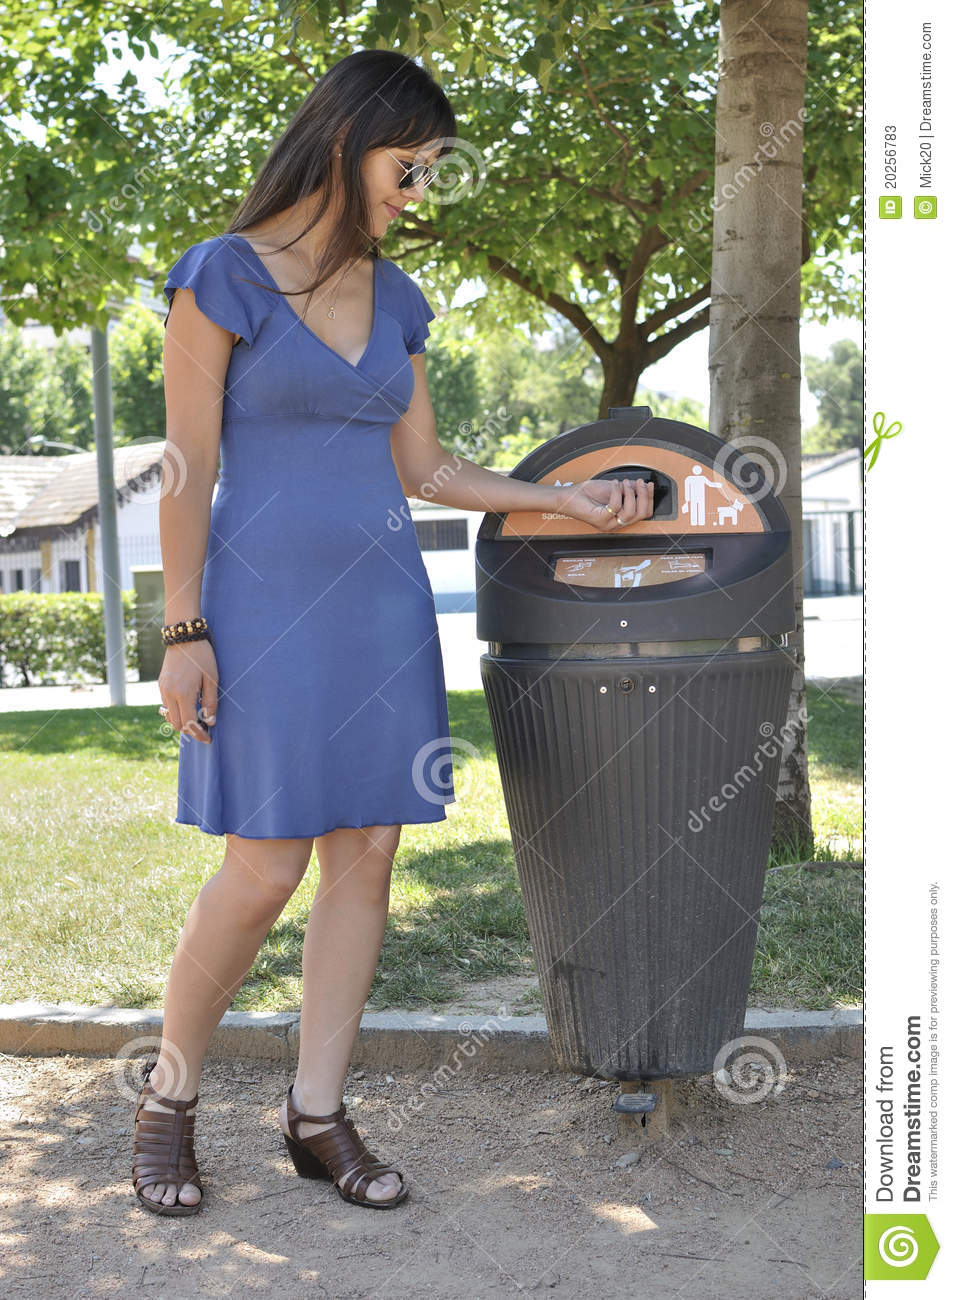 more similar stock images of girl picking up dog excrement bag in